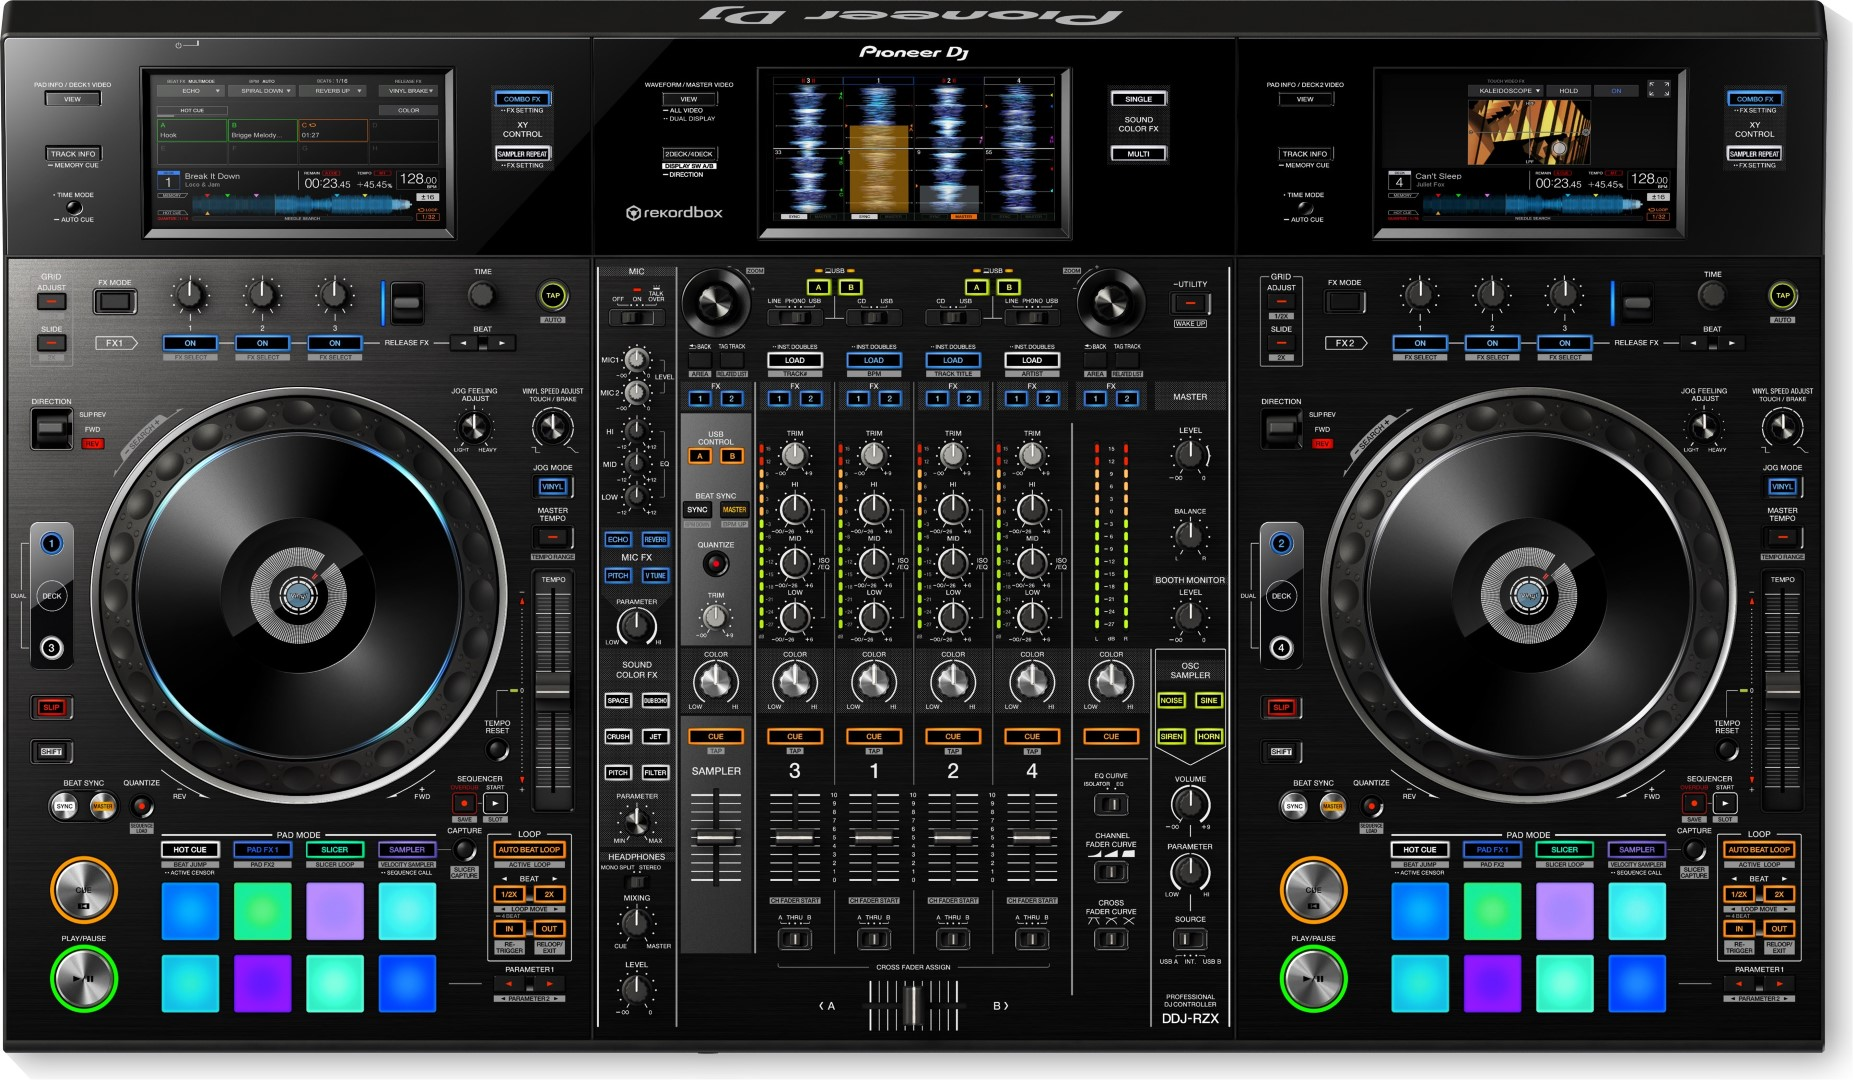 DDJ-RZX Professional 4-Channel DJ Controller for Rekordbox